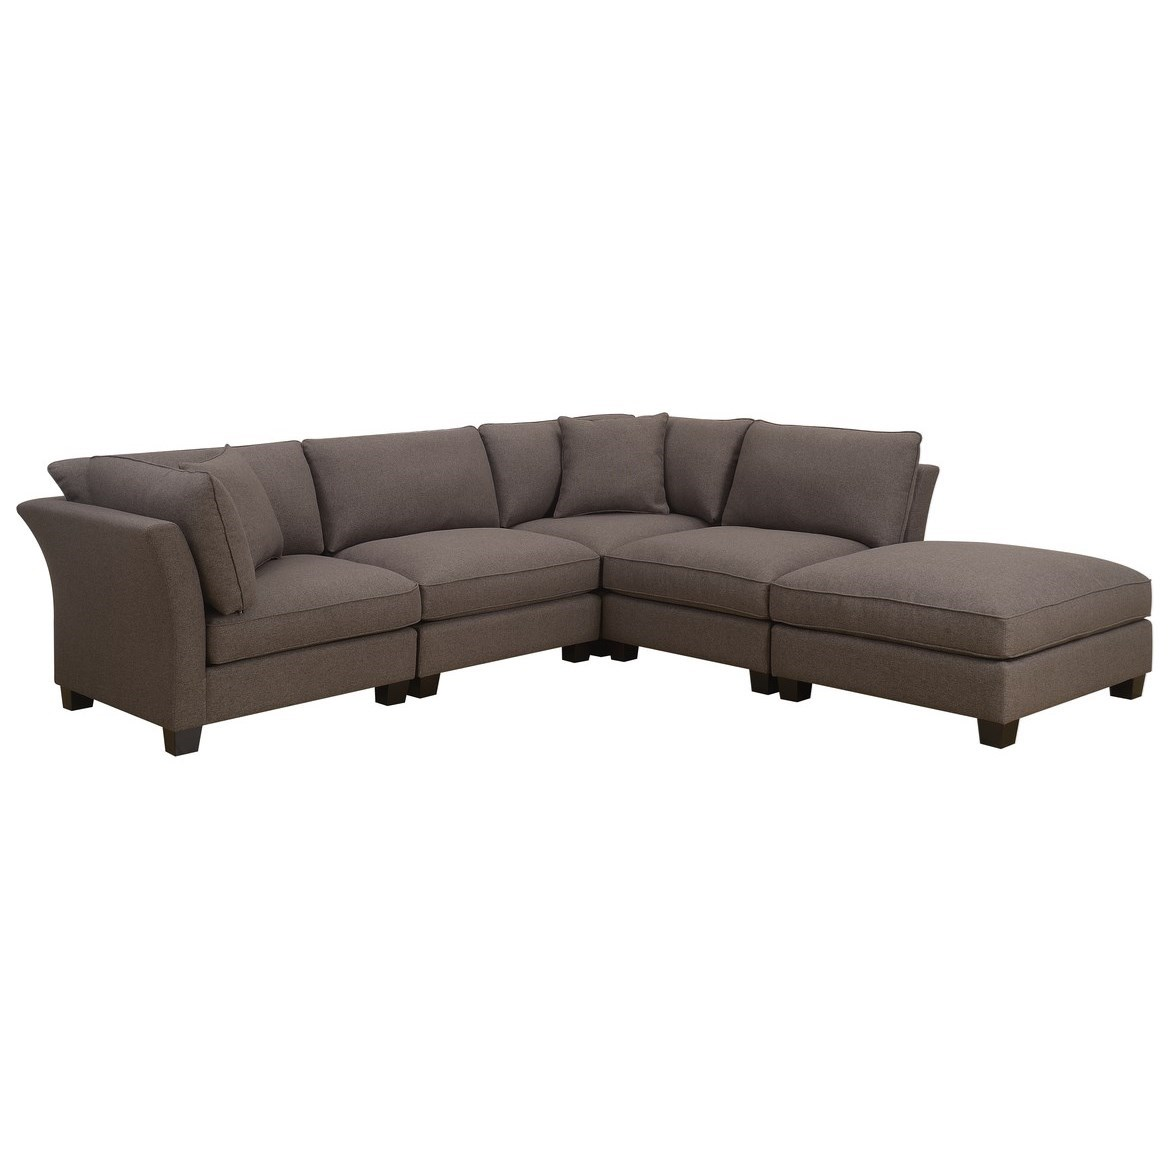 Arlington 5-Piece Sectional with Ottoman by Emerald at Northeast Factory Direct